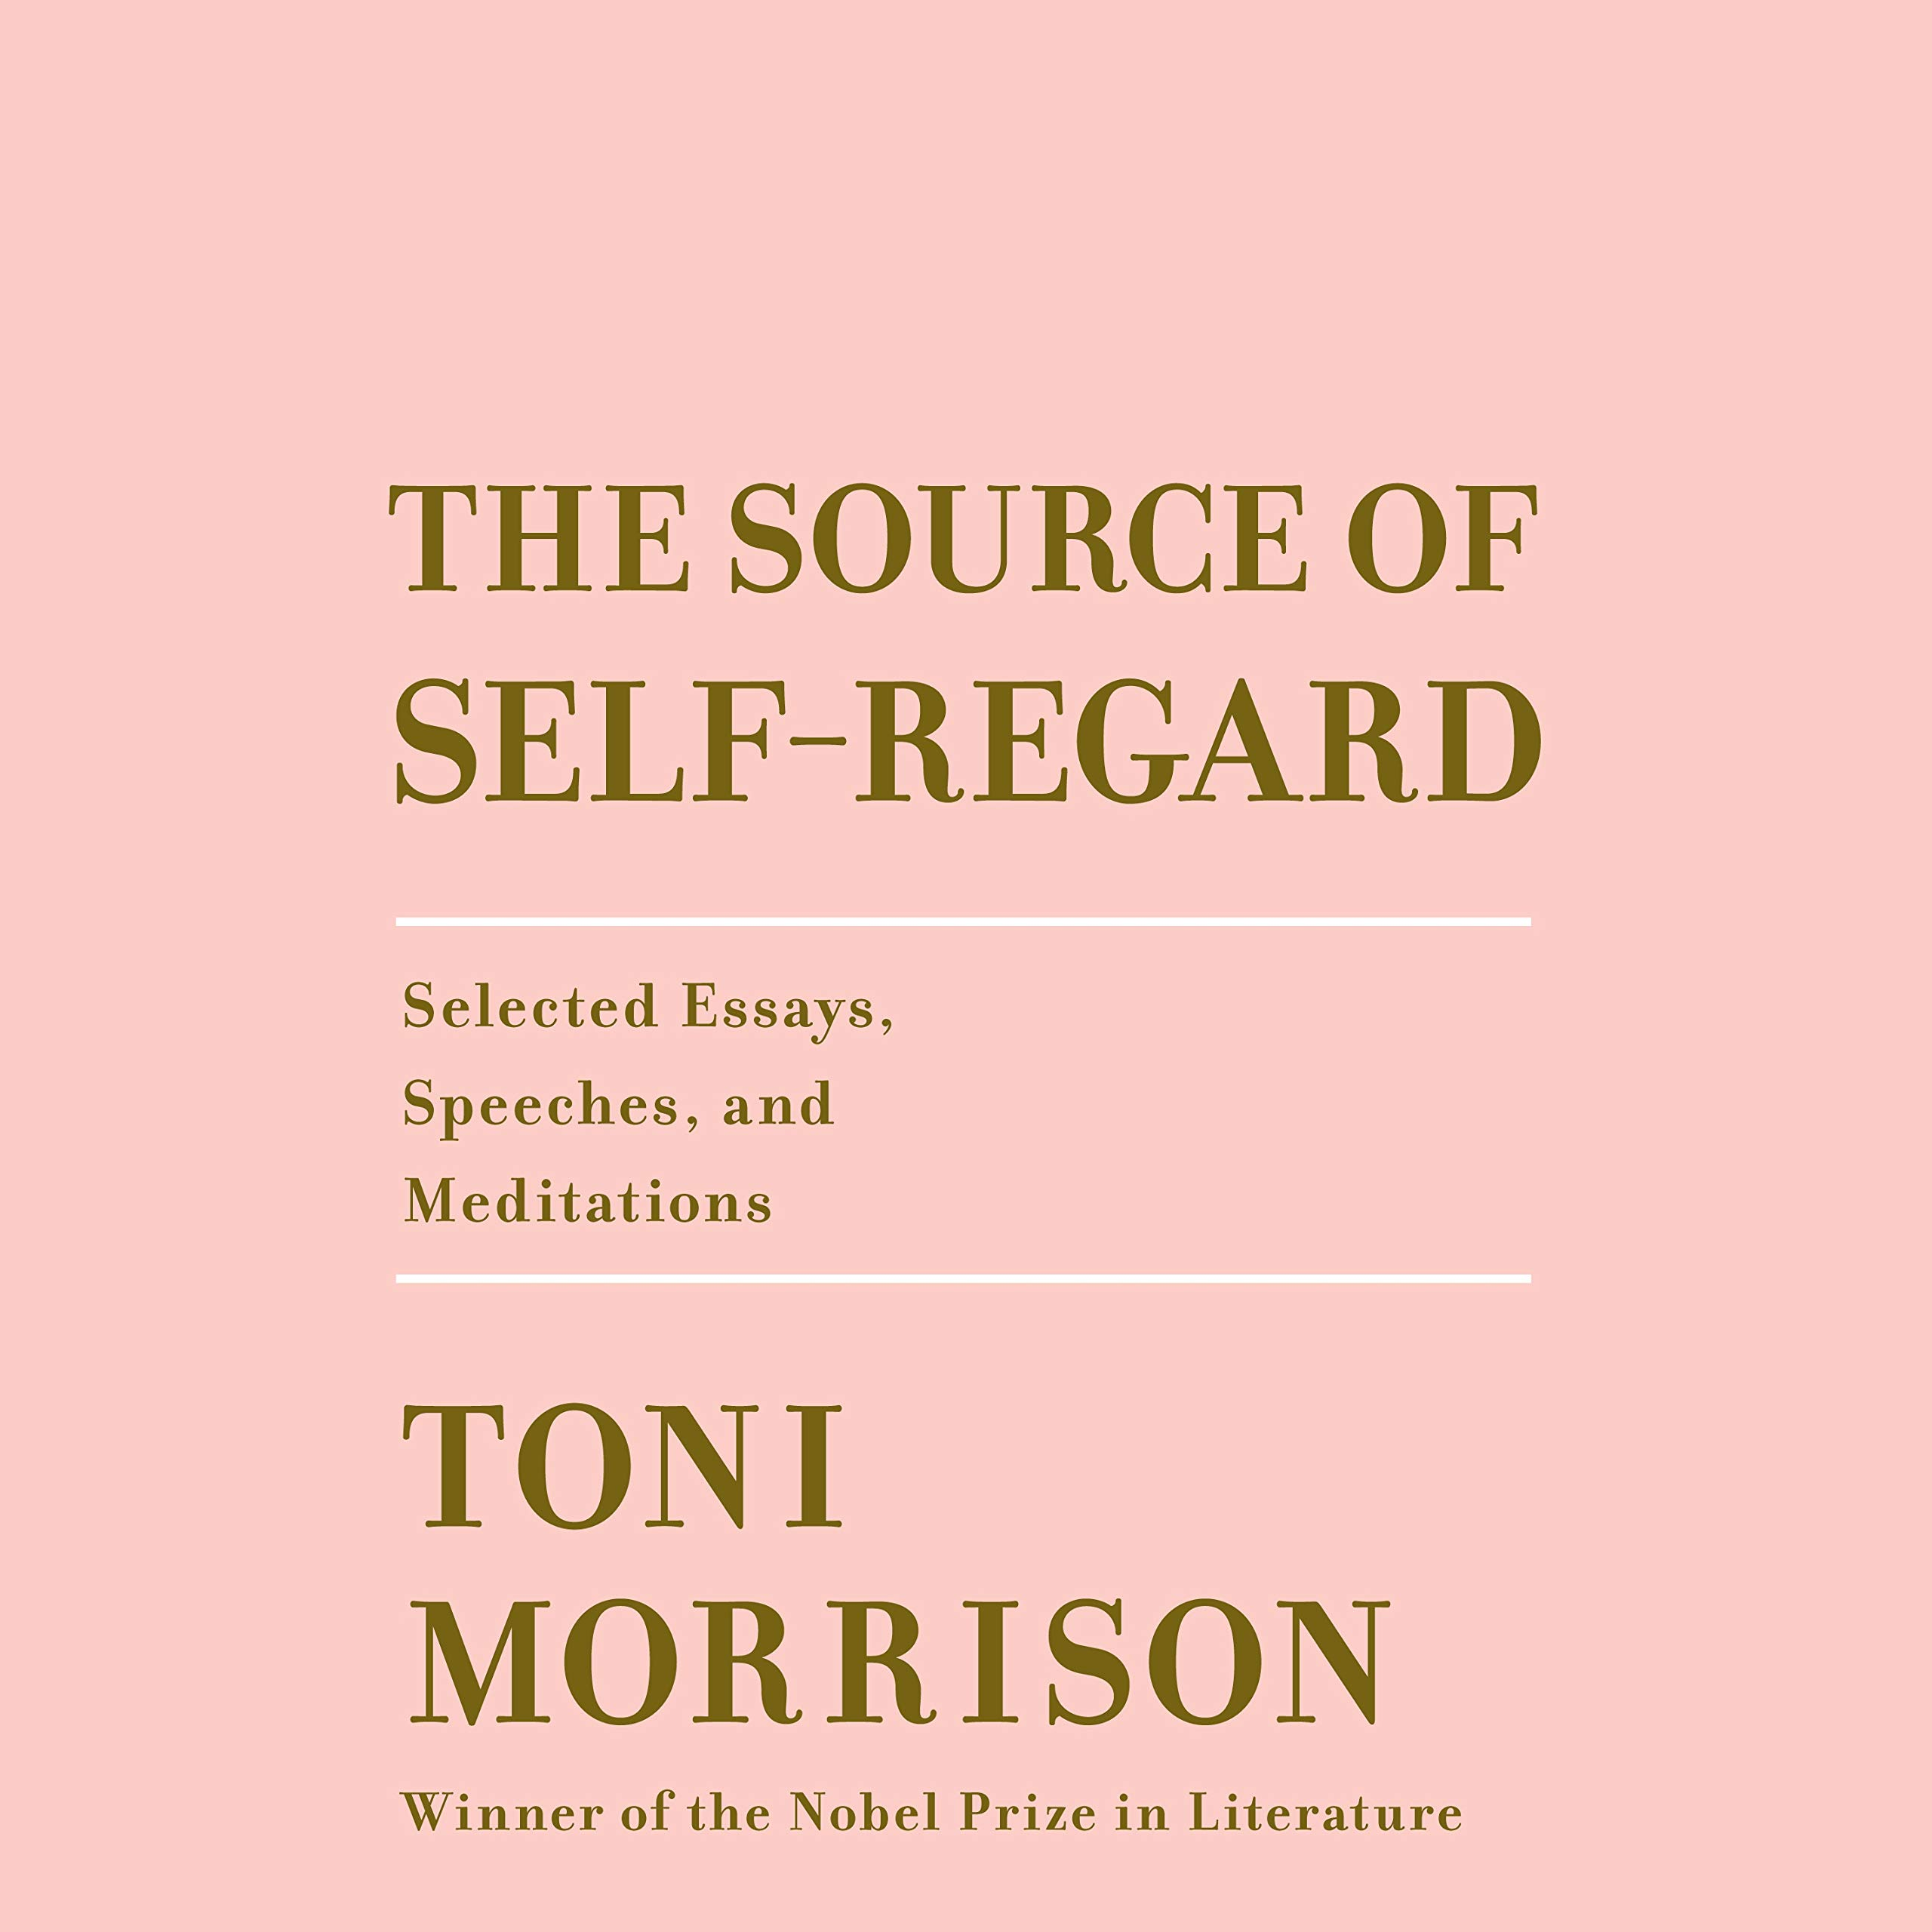 The Source of Self-Regard: Selected Essays, Speeches, and Meditations by Toni Morrison in white text on a pink background